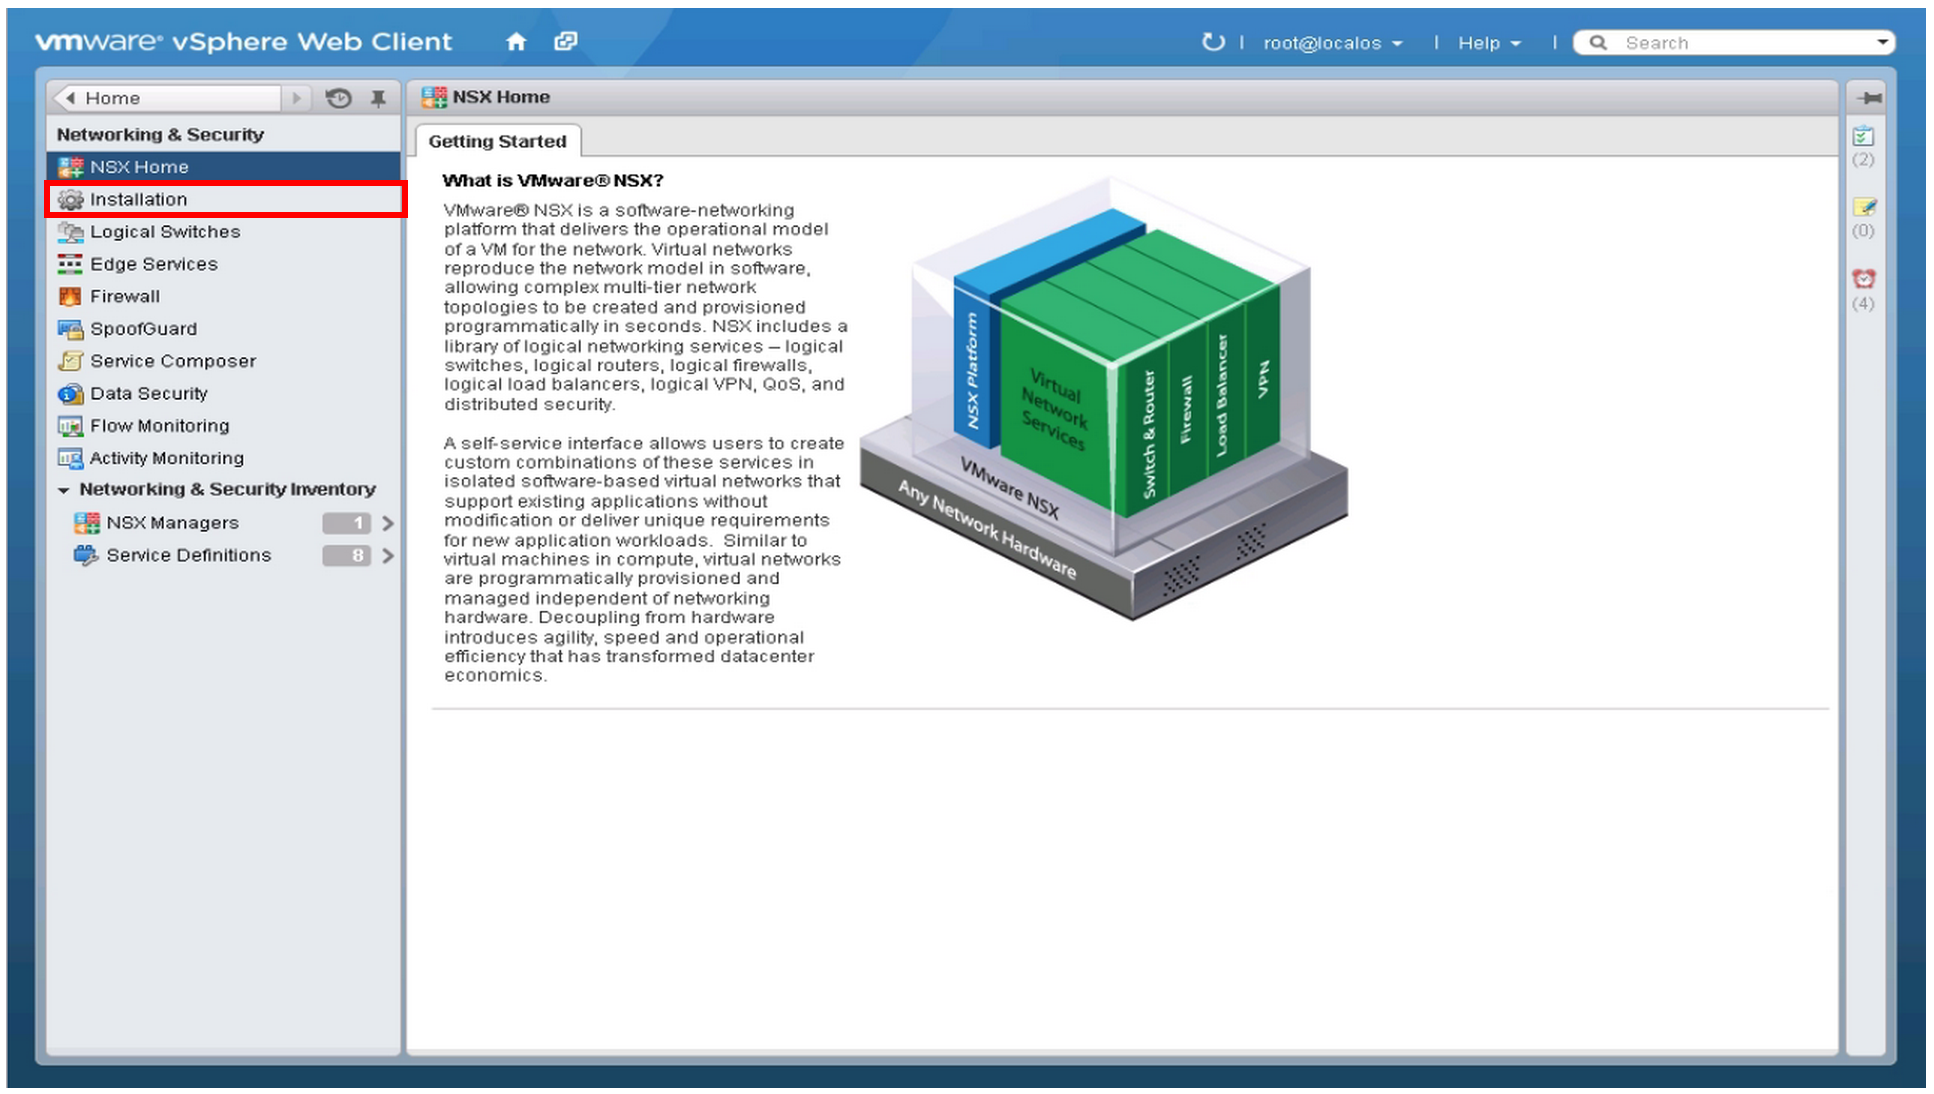 Vmware Nsx Product Walkthrough Eric Sloof Swith For Diagram October 2013